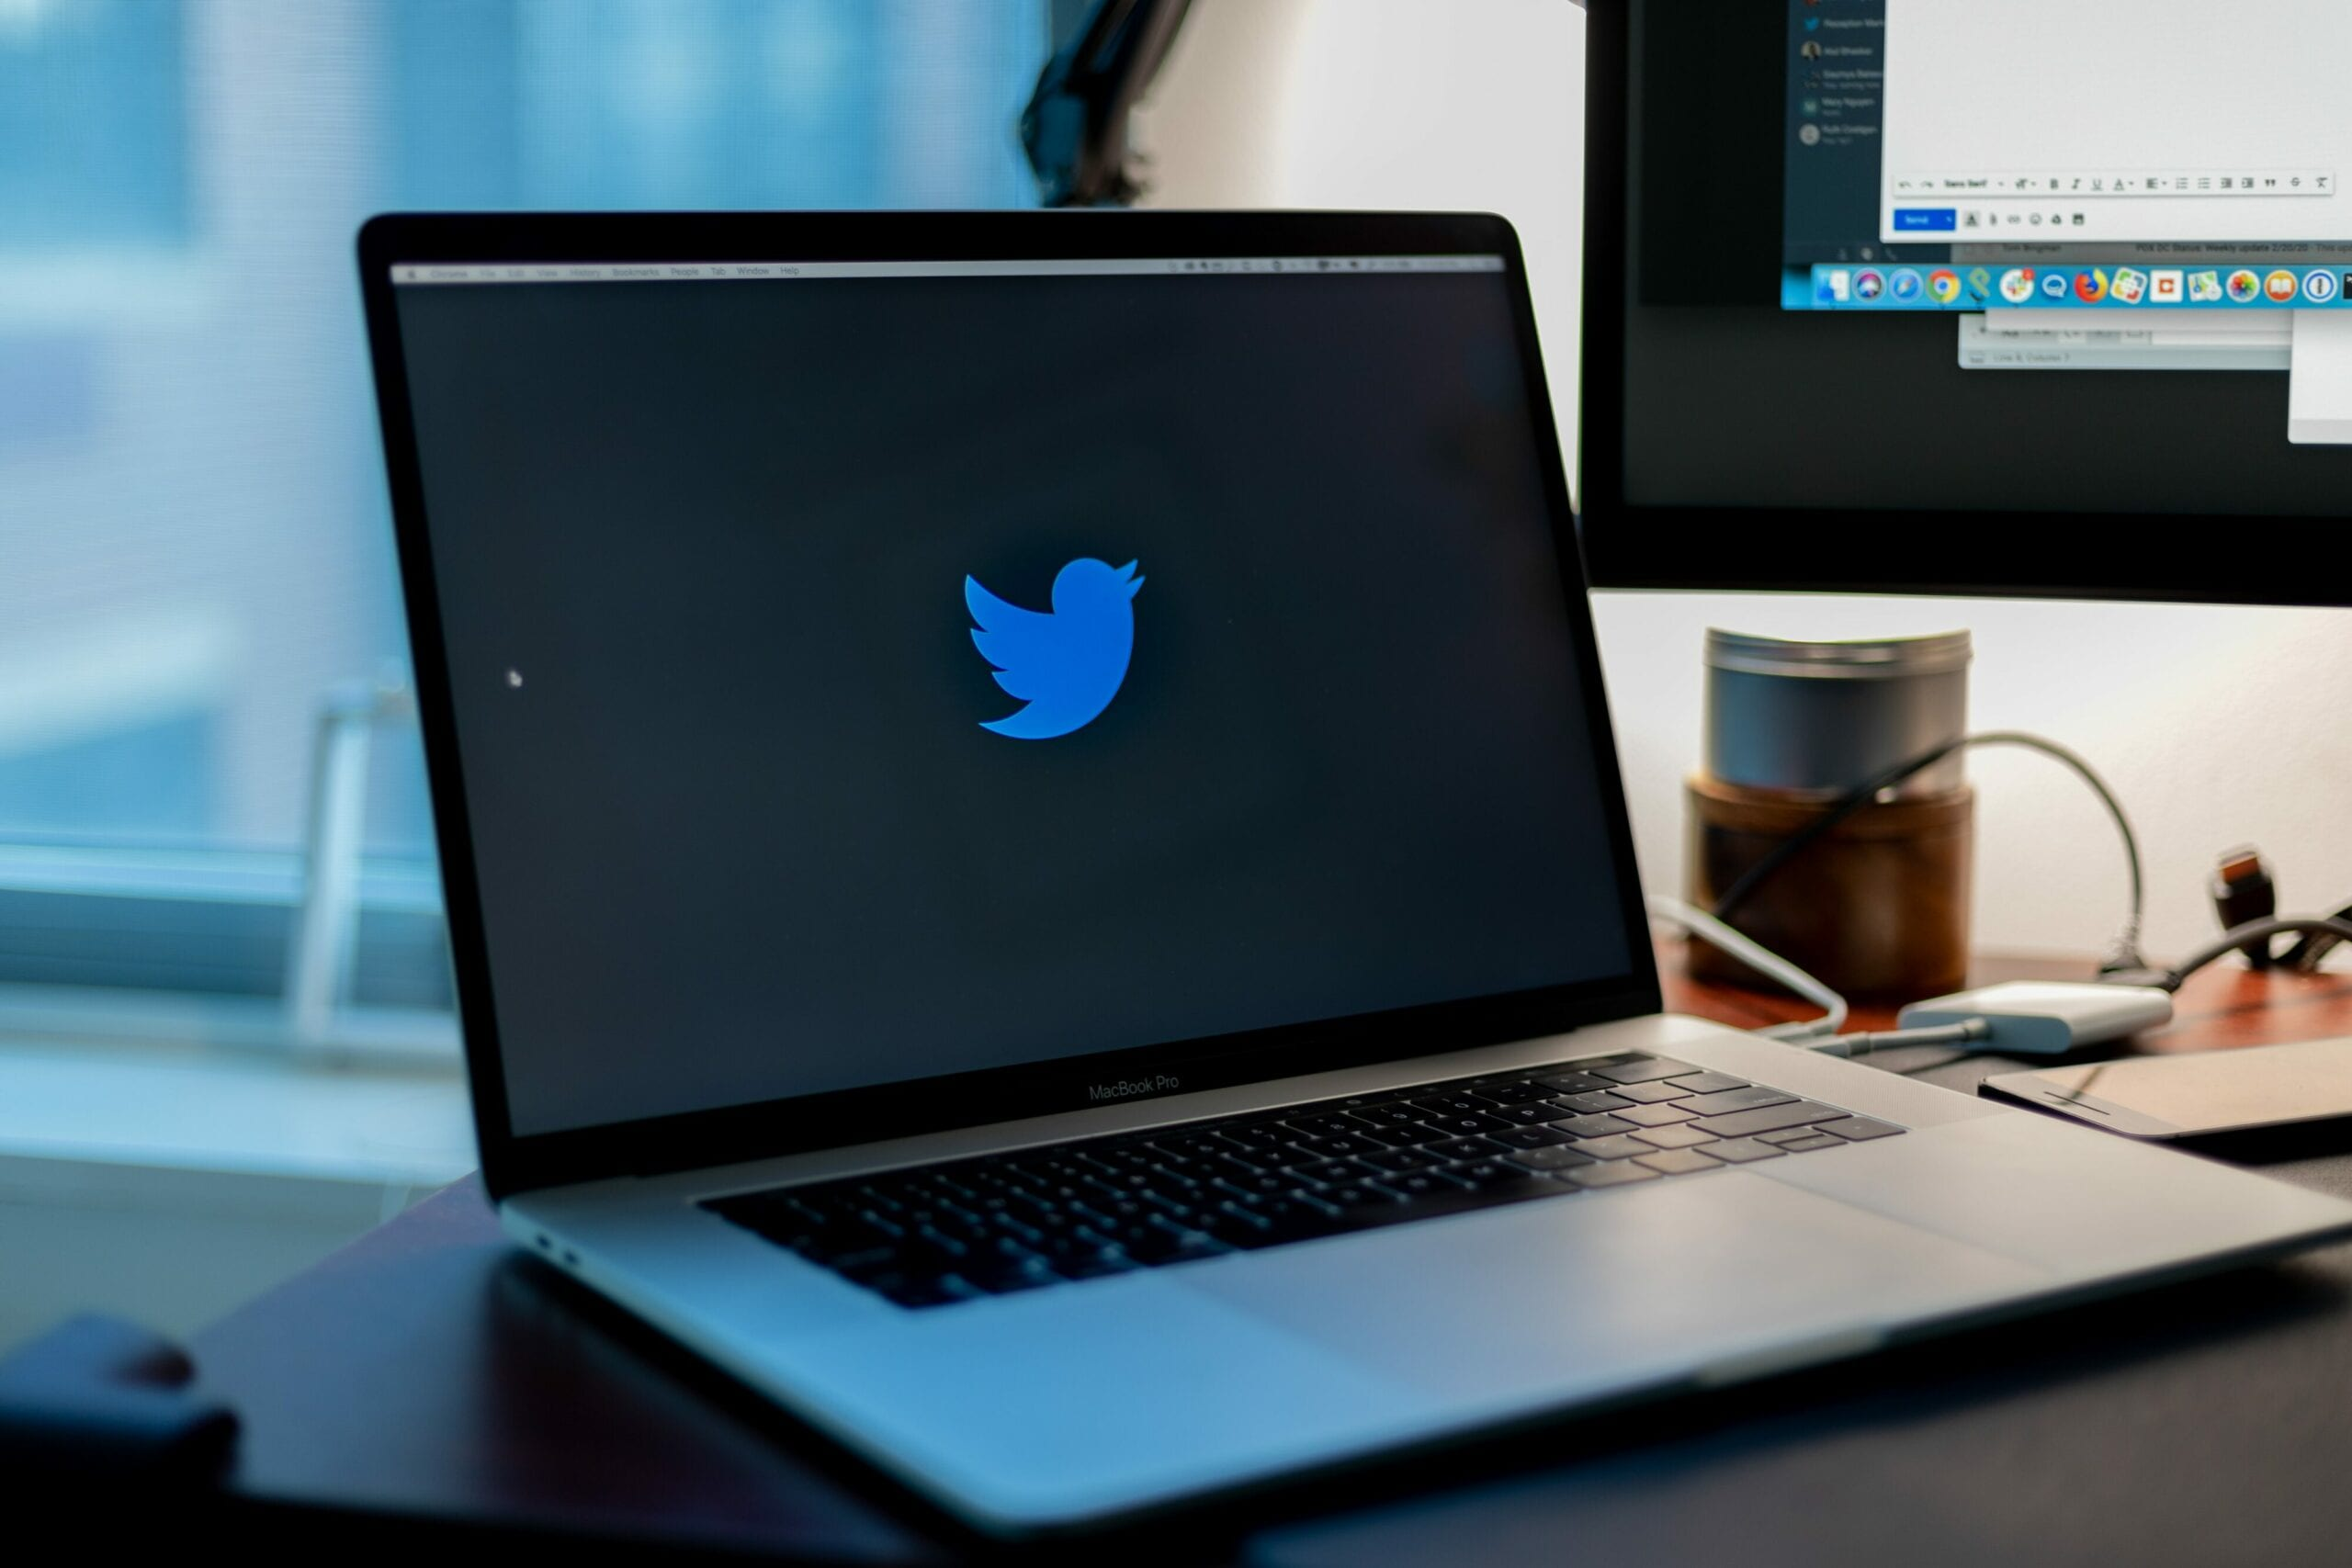 A laptop with the Twitter logo on the screen